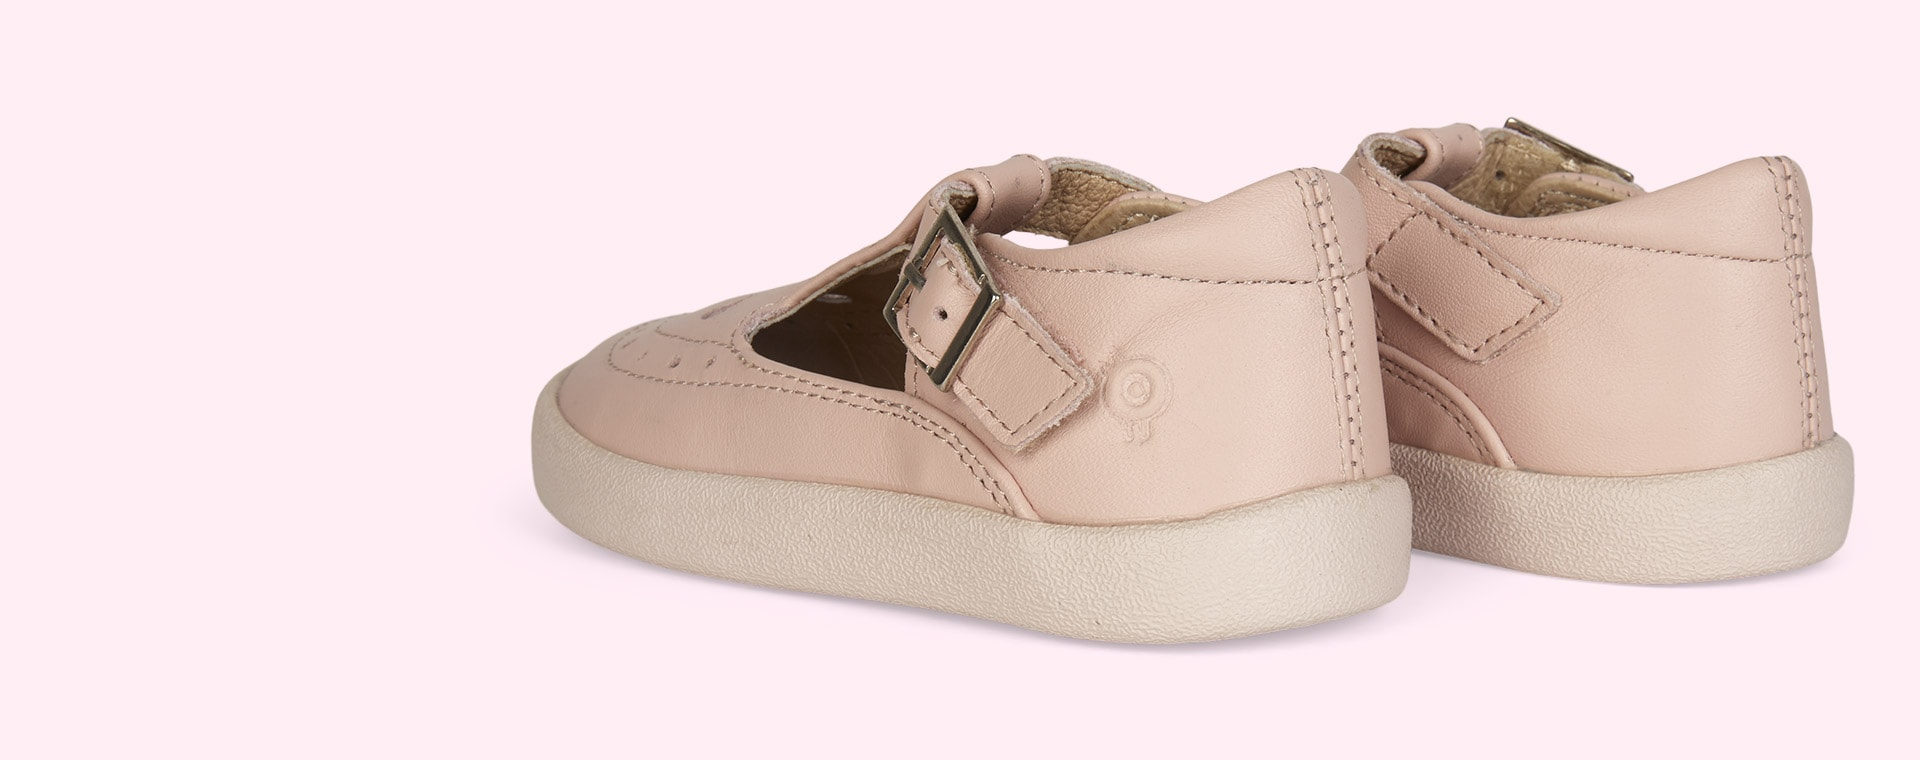 Powder Pink old soles Royal Shoe